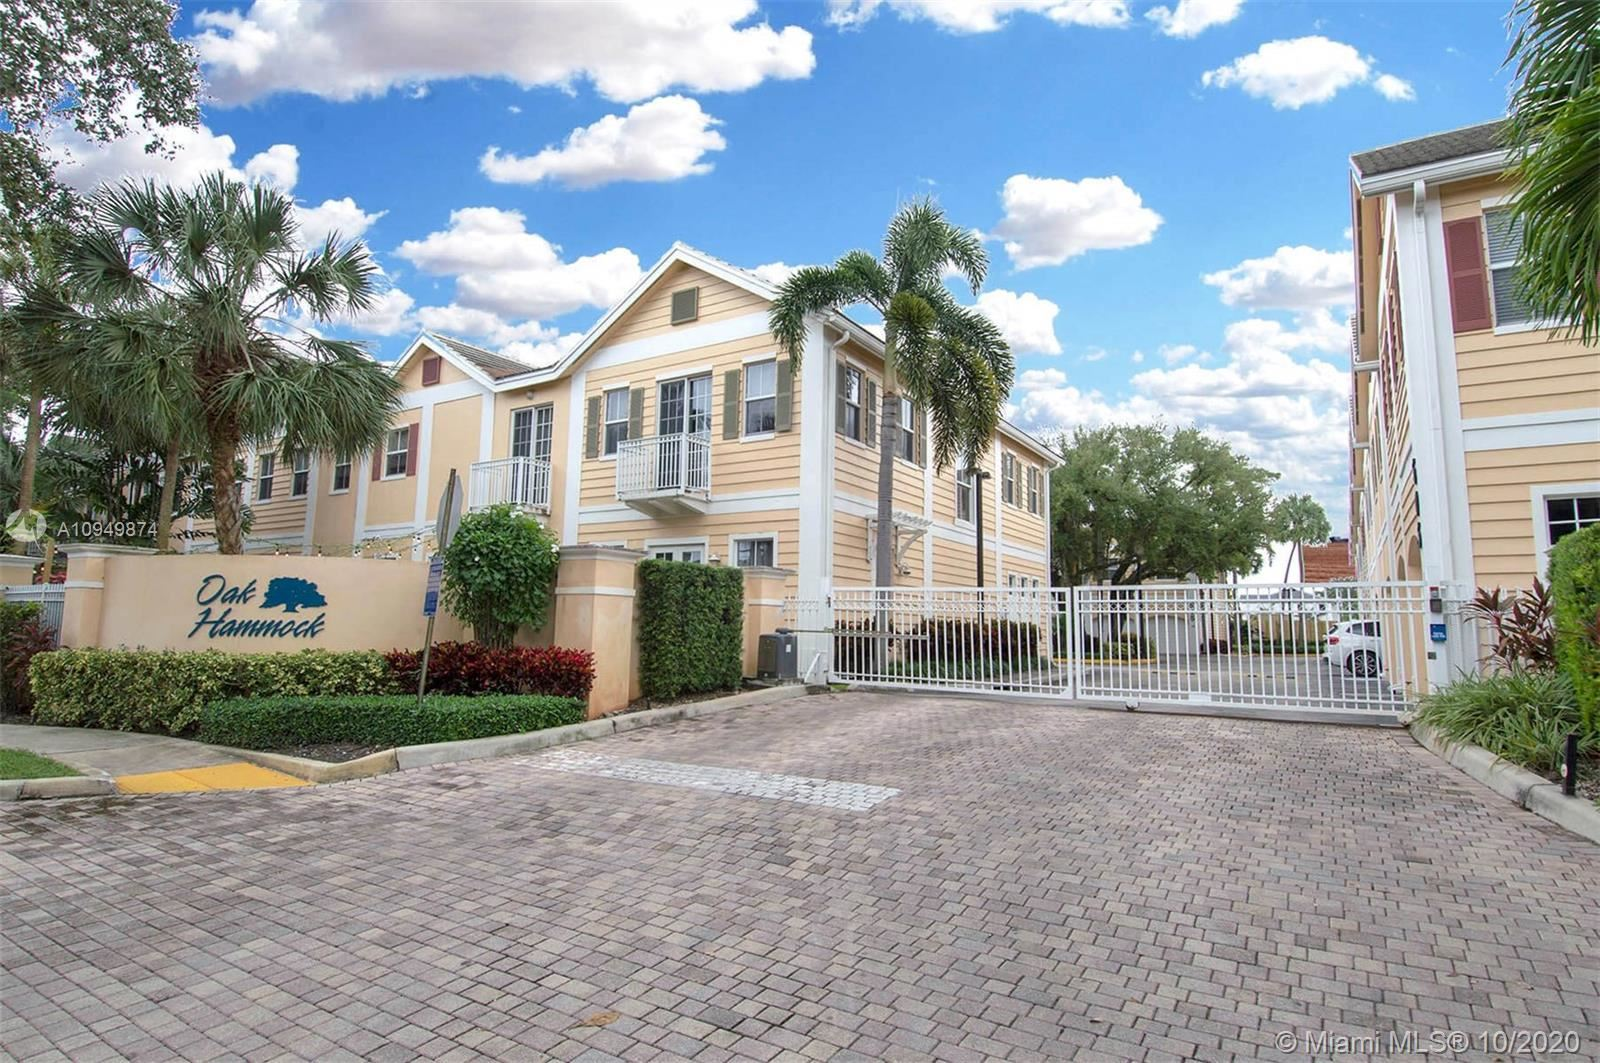 505 SW 18th Ave #12, Fort Lauderdale, FL 33312 - #: A10949874